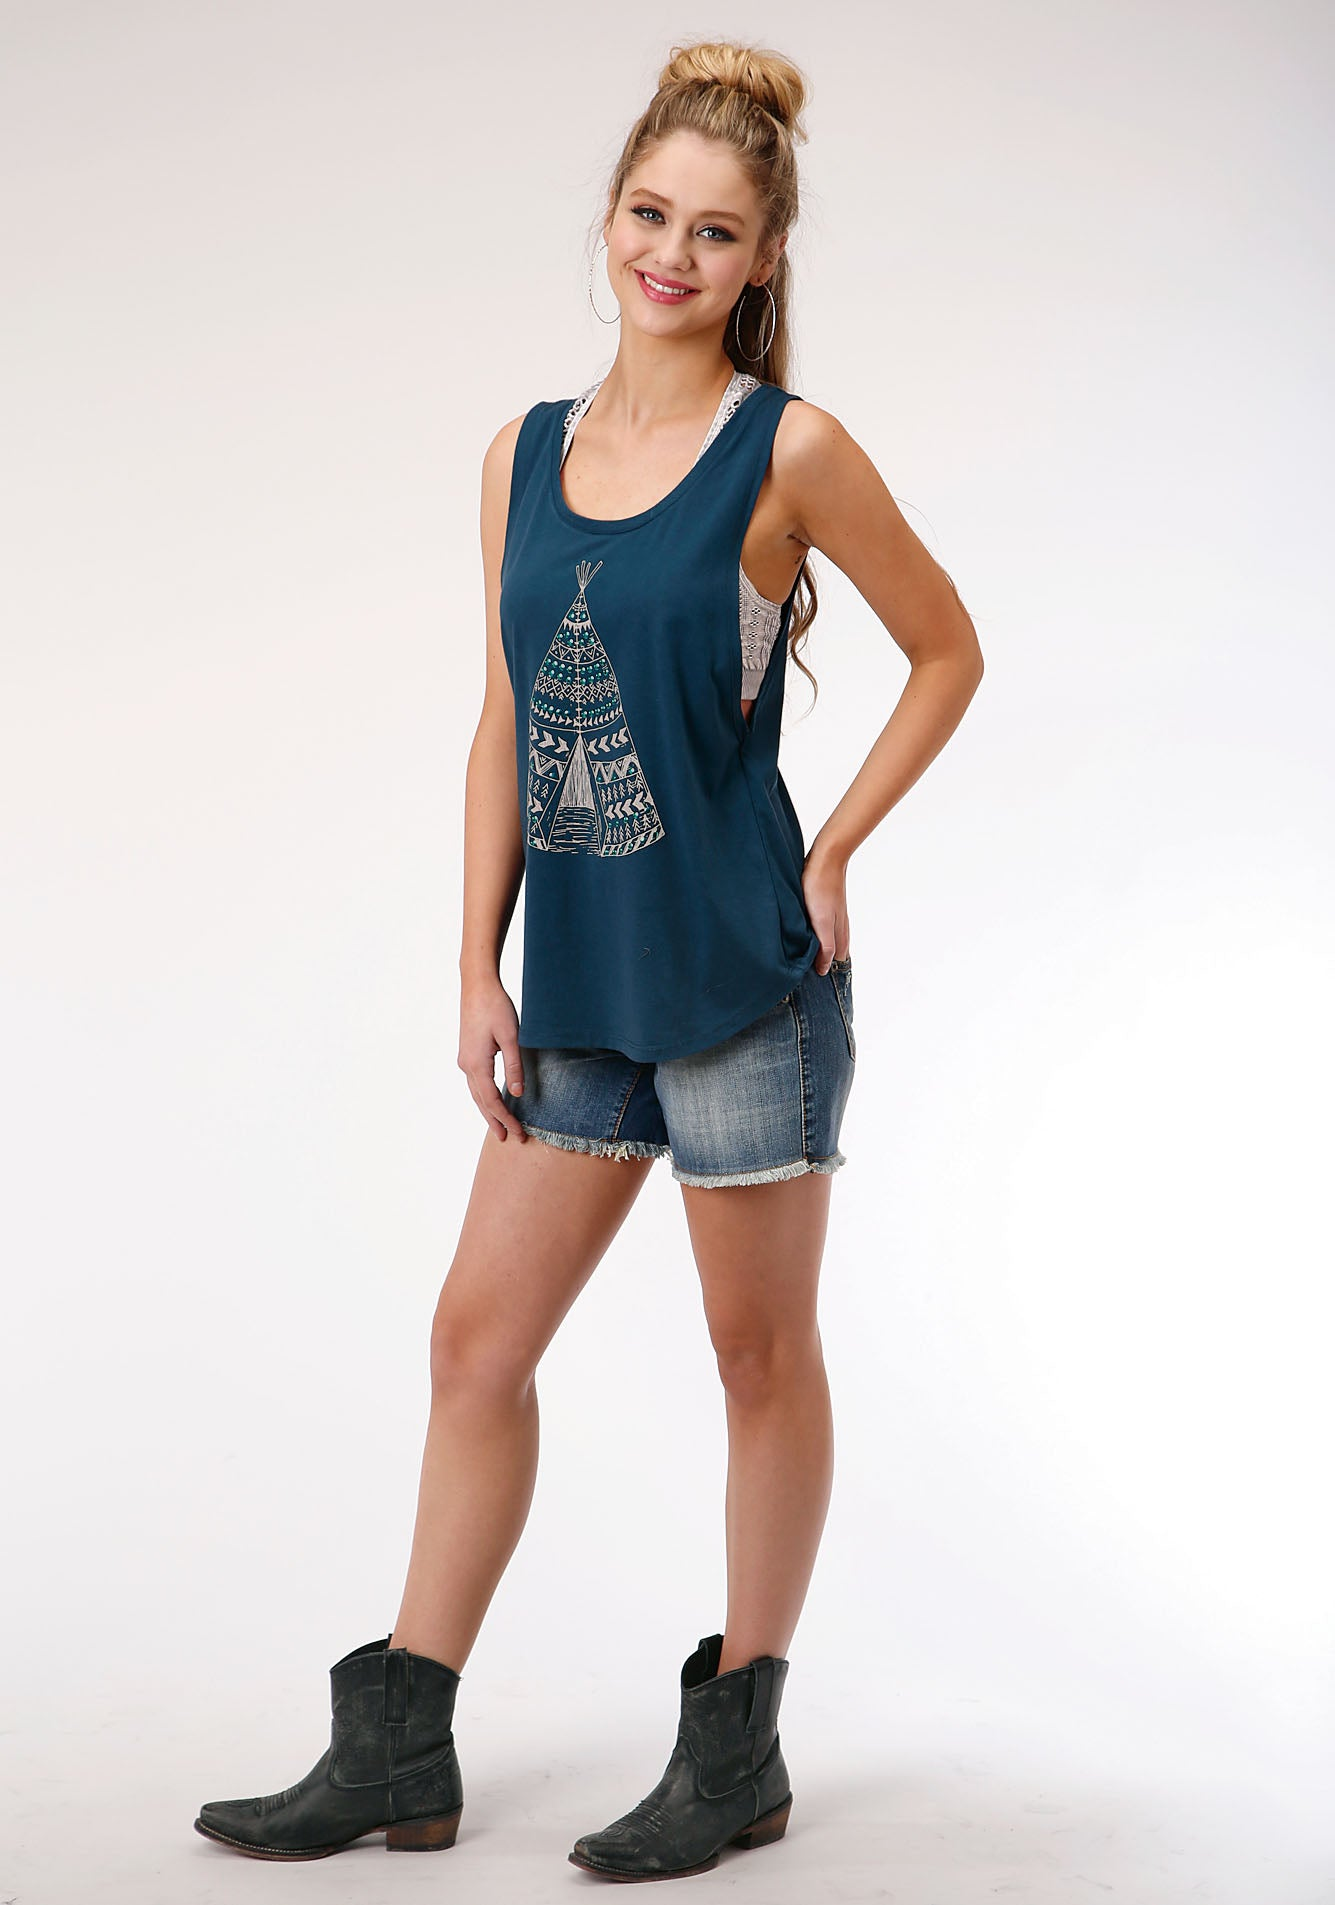 ROPER WOMENS BLUE 00133 POLY COTTON JERSEY TANK FIVE STAR COLLECTION- SPRING II SLEEVELESS